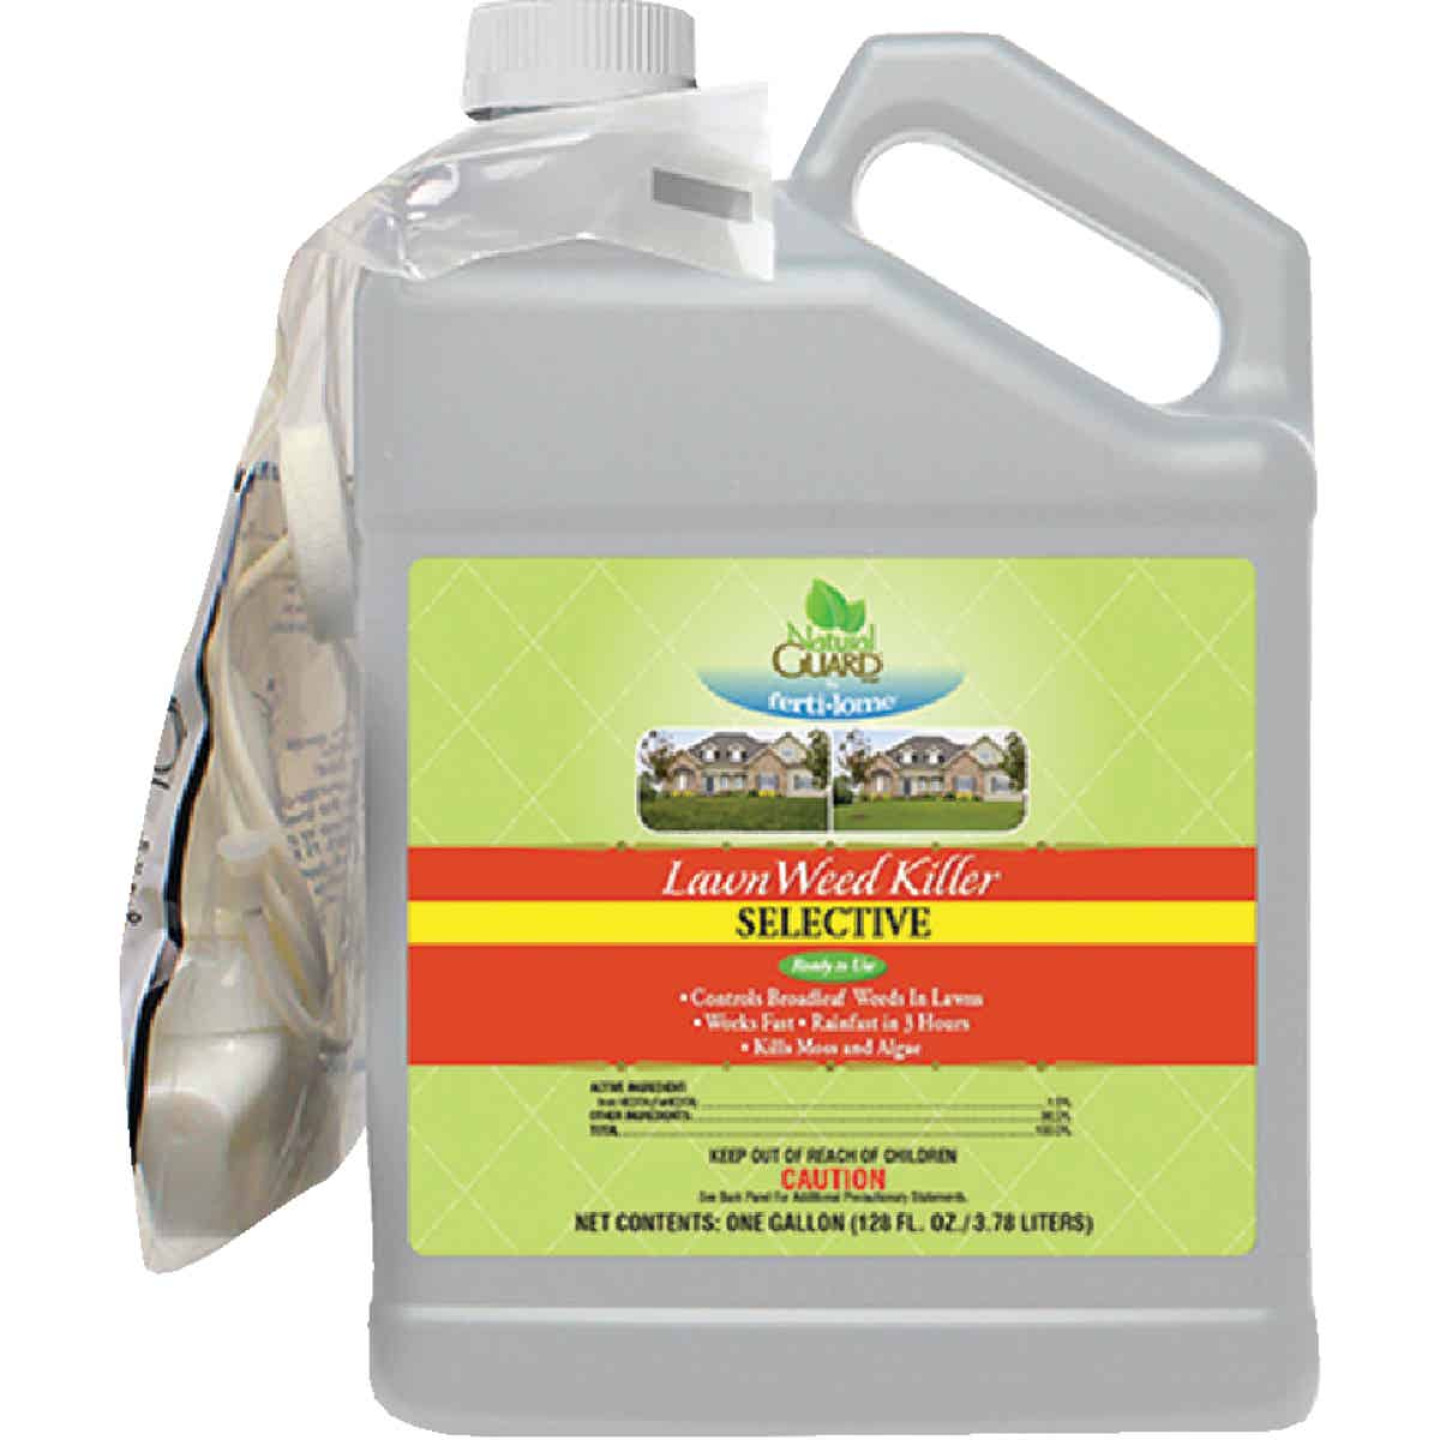 Natural Guard 1 Gal. Ready To Use Trigger Spray Weed Killer Image 1